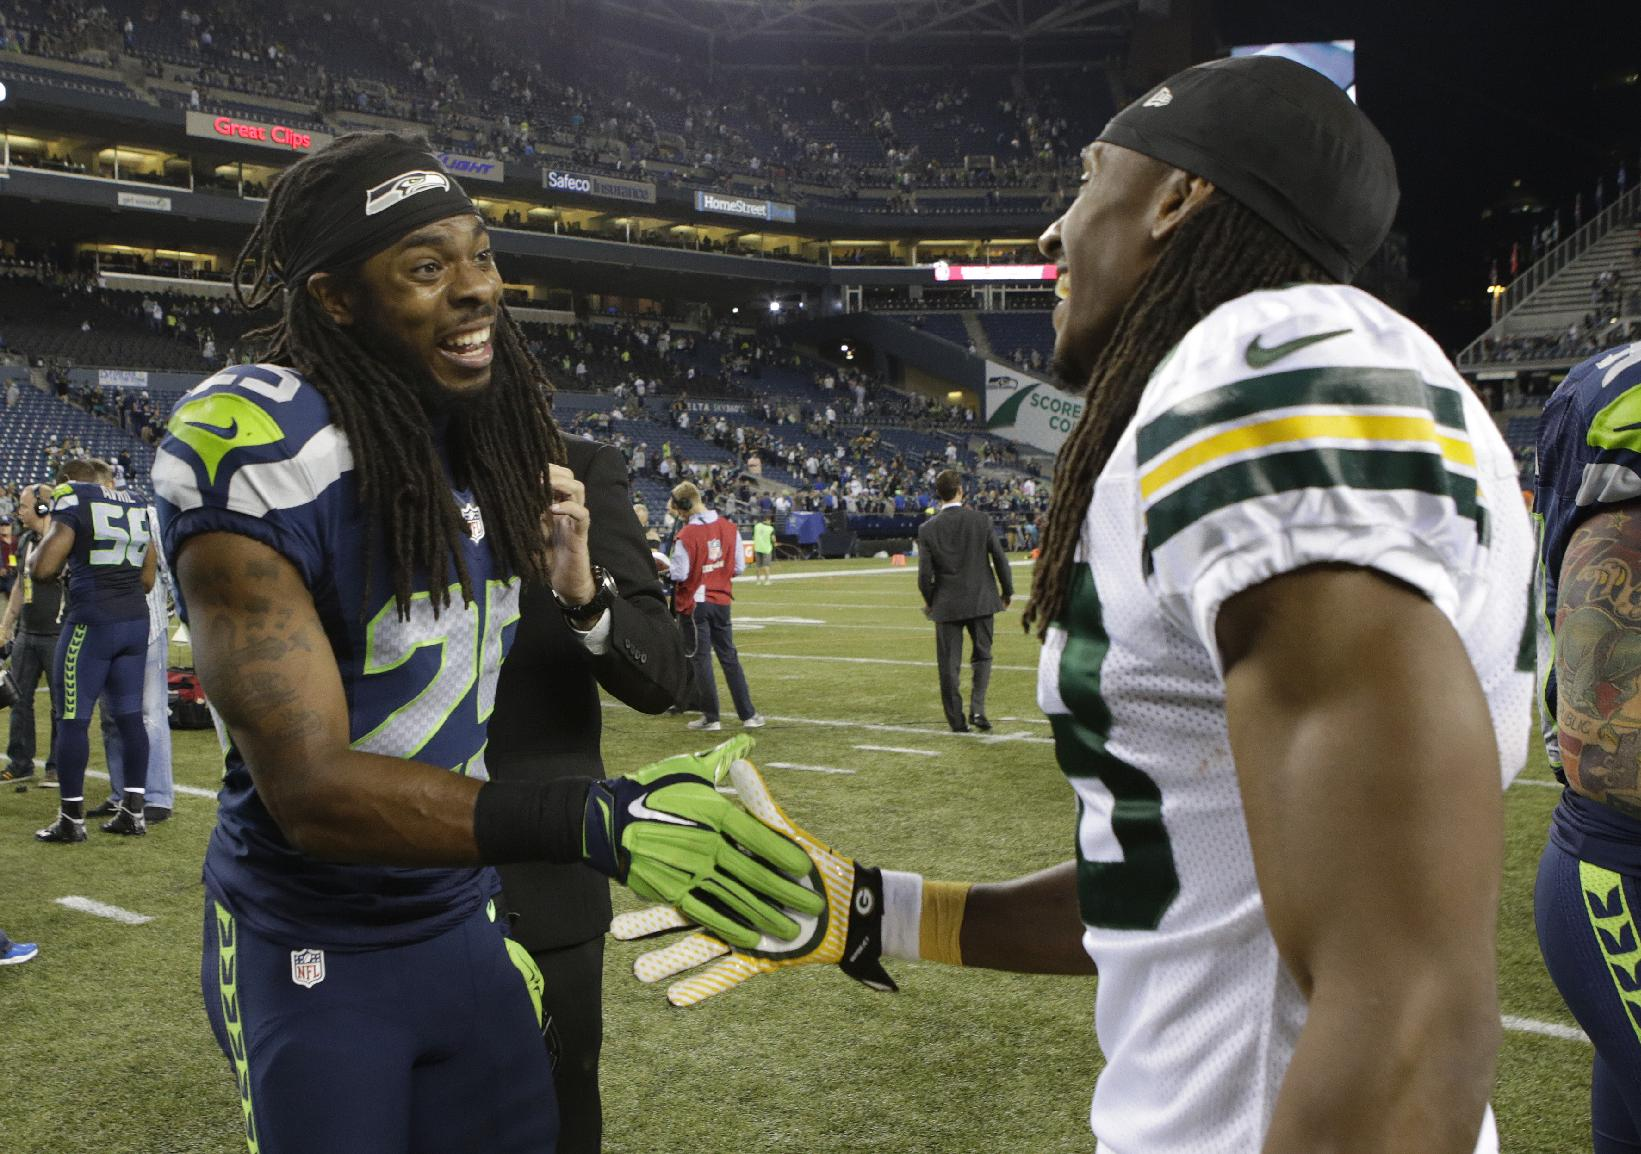 Seahawks dominate Green Bay 36-16 to begin 2014